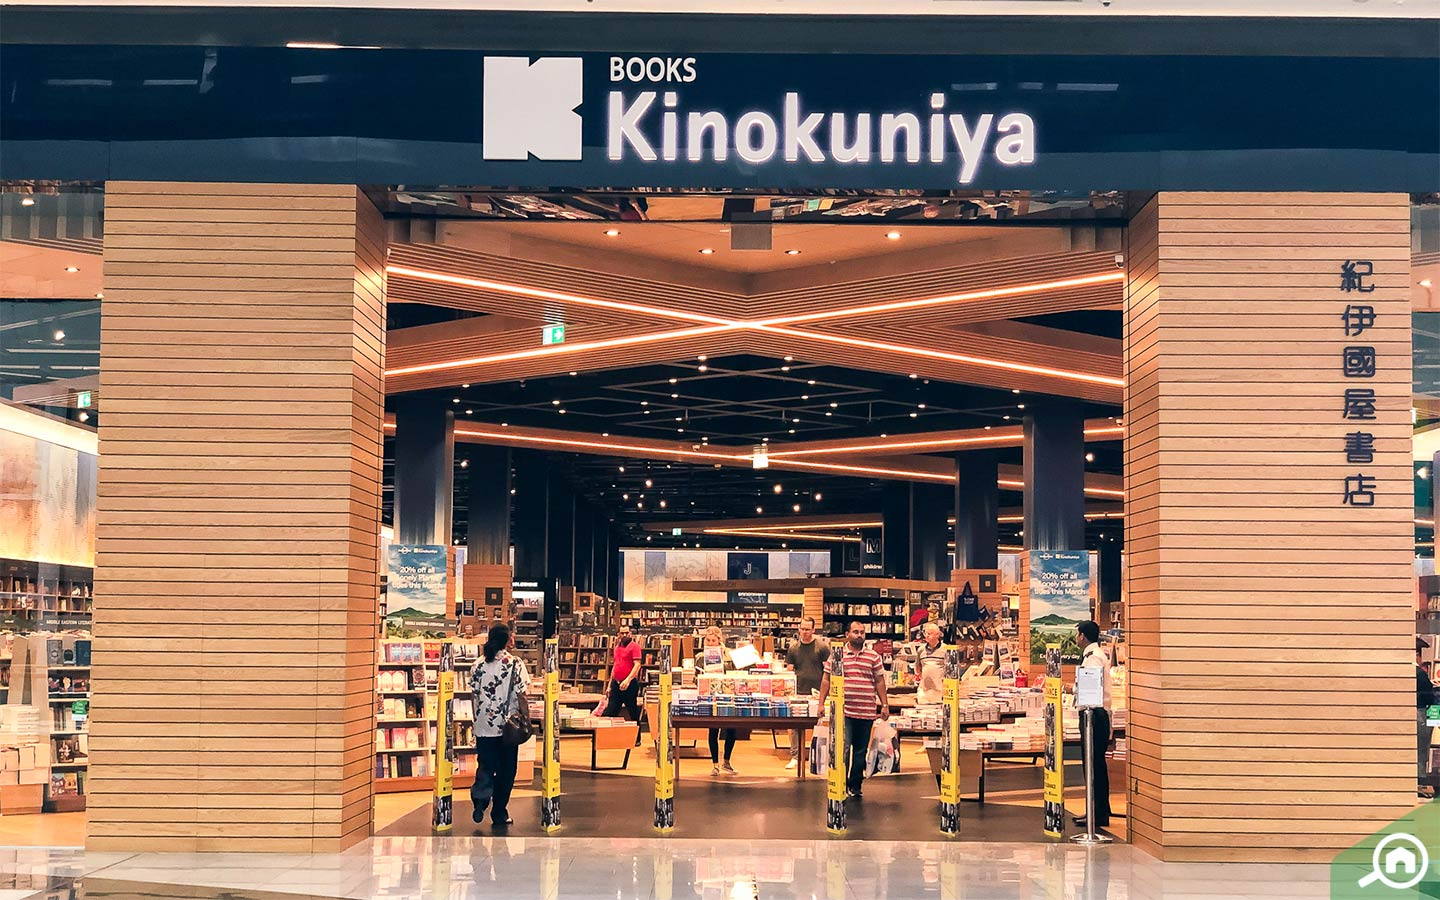 Kinokuniya Bookstore in Dubai Mall